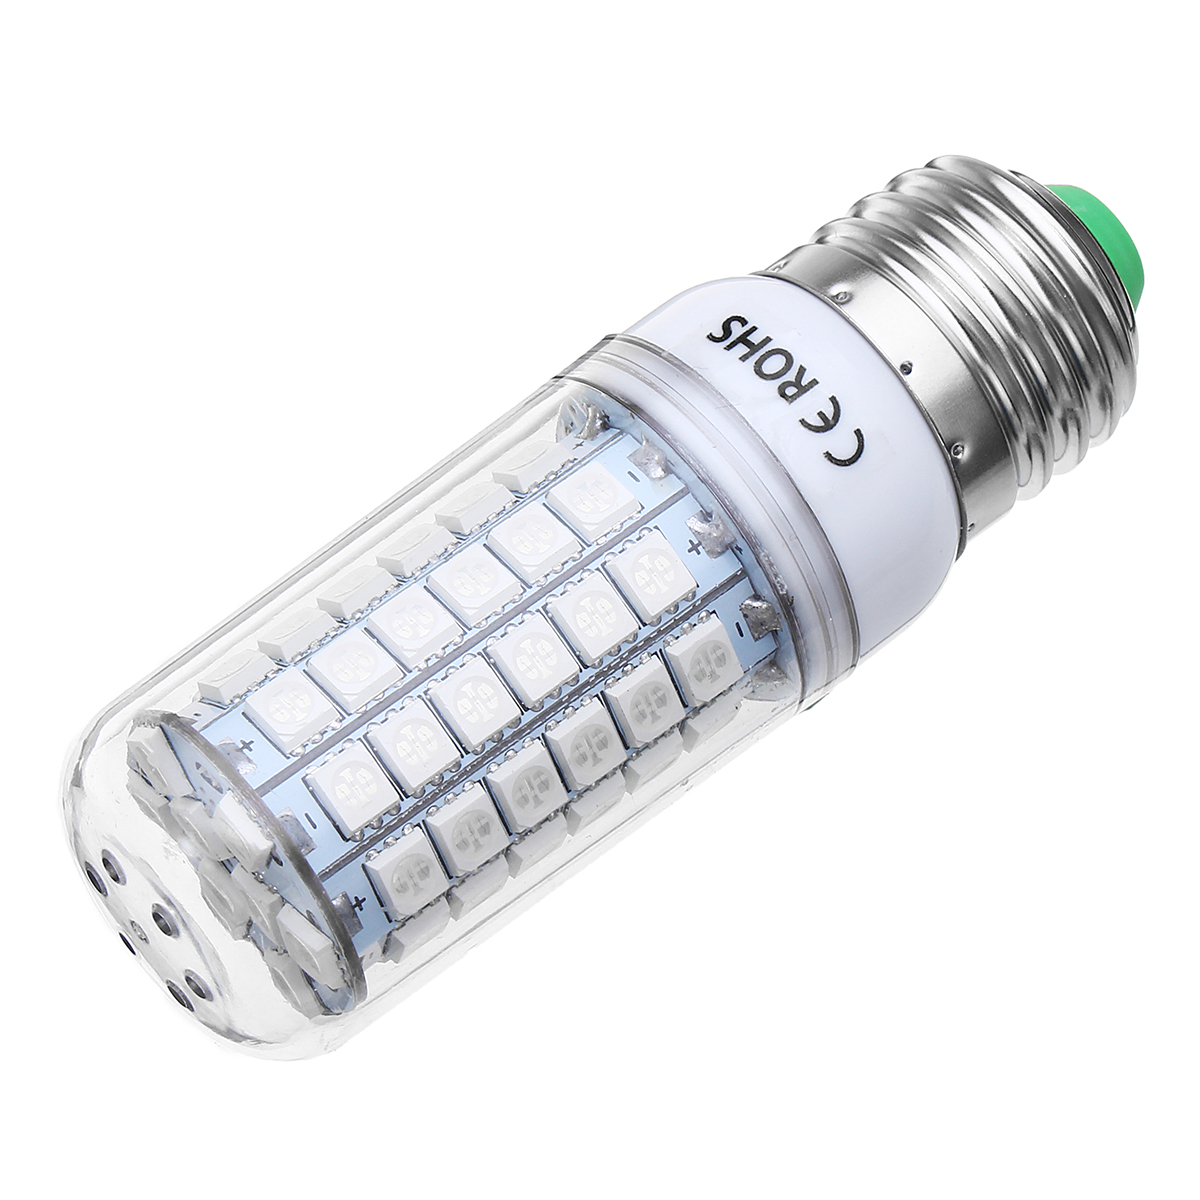 7W E27 B22 E14 Red Green Blue Non-Dimmable 5050 SMD LED Corn Light Bulb Spot Lamp AC220V